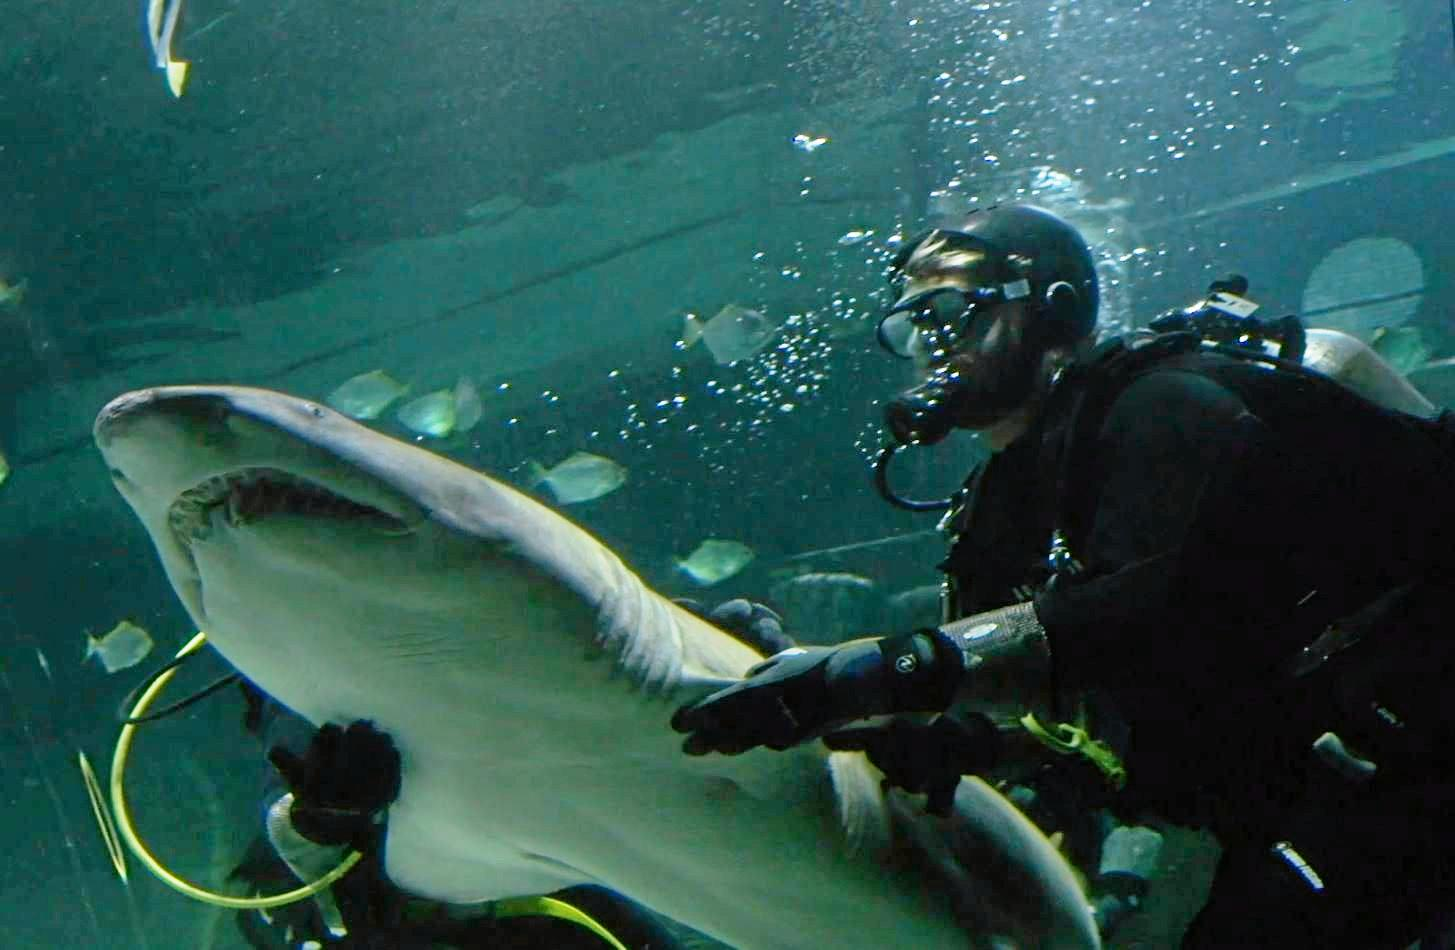 Sea Life Sunshine Coast has welcomed three Grey Nurse sharks back to the Sunshine State, becoming the only tourist attraction in Queensland to house the endangered species.